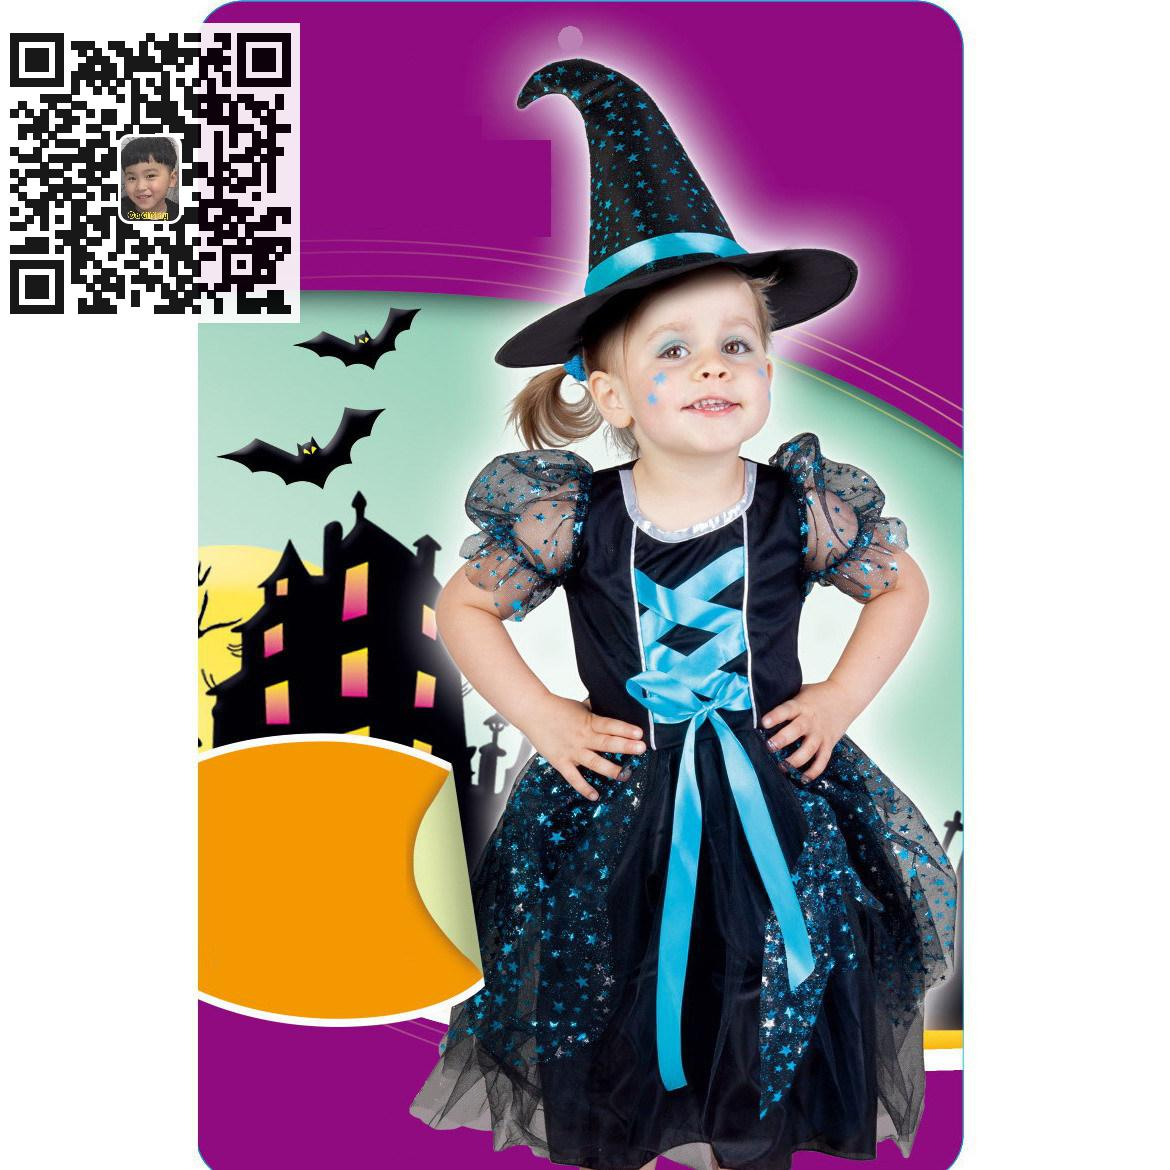 2018 New Deluxe Witch Dress Princess Dress Girl Carnival Cosplay Clothing Halloween Costume For Kids Age 3-10 Years